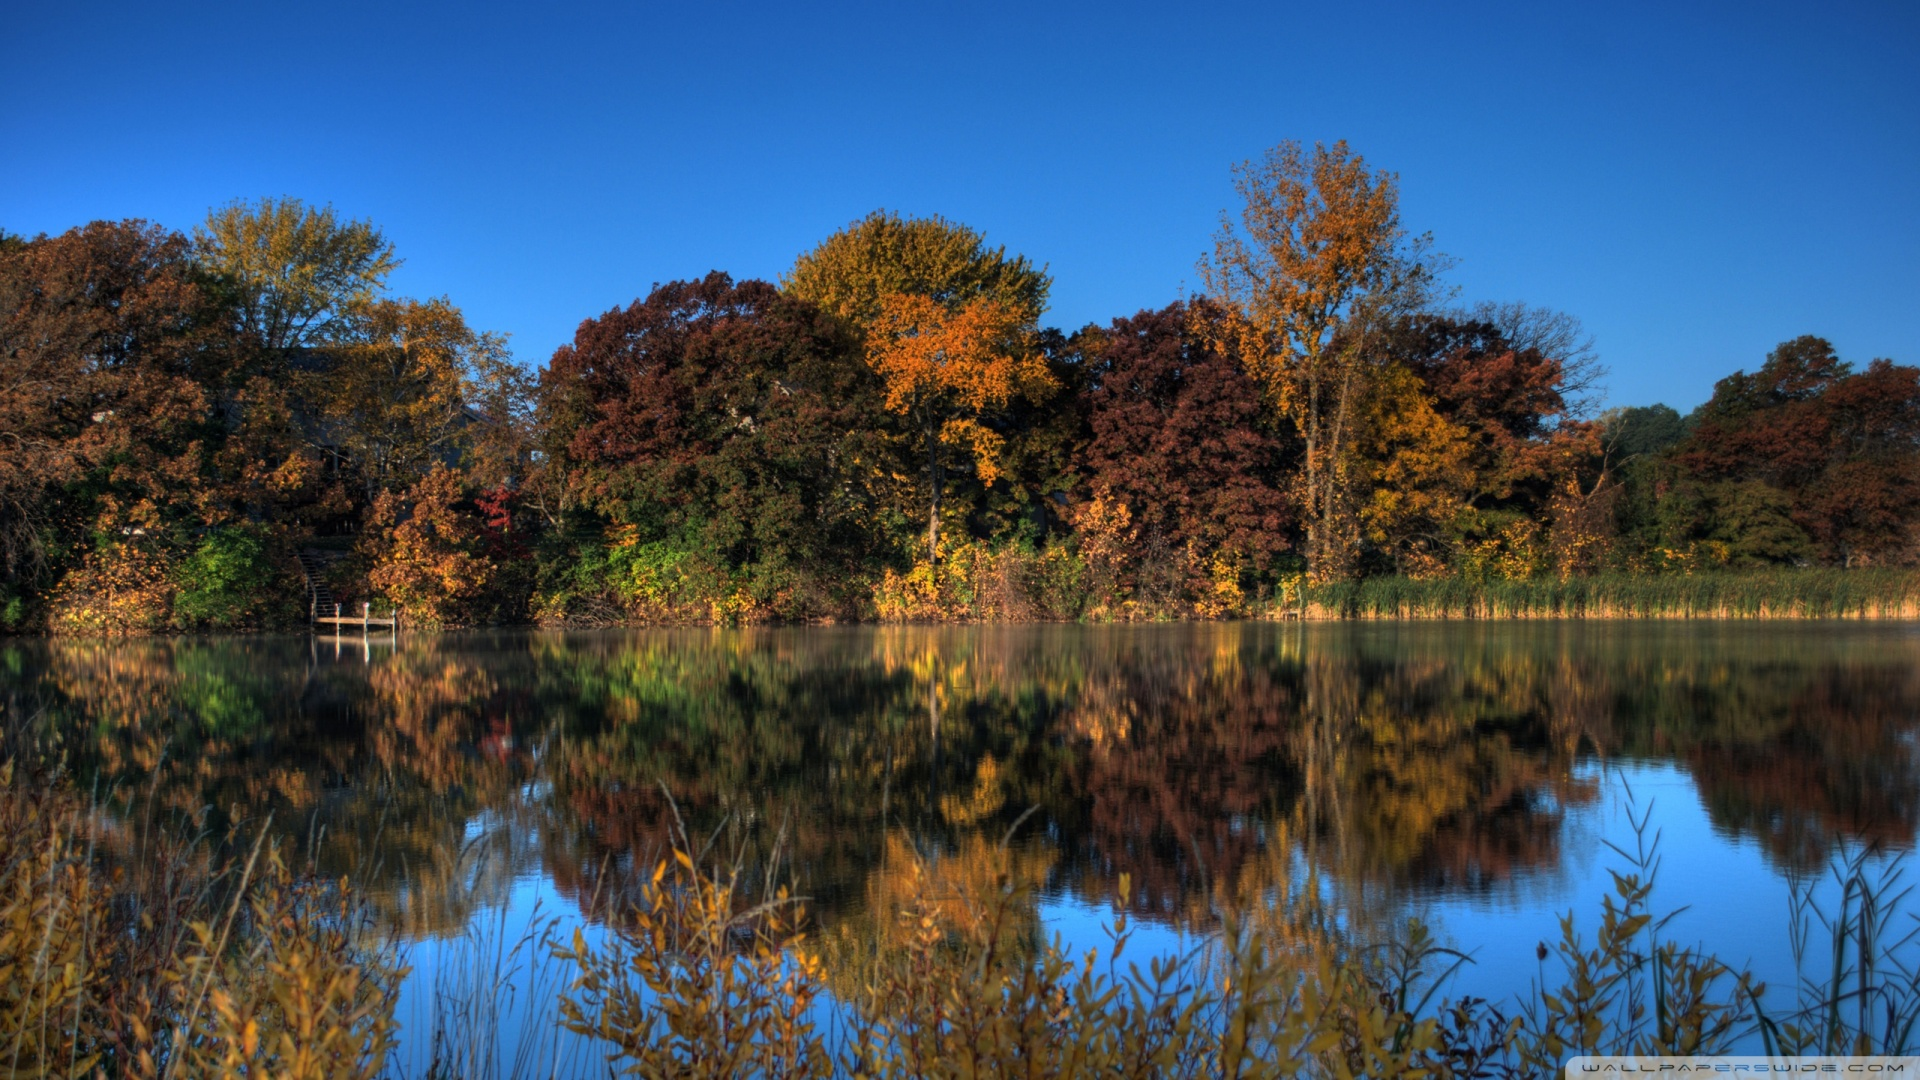 Fall Wallpaper Dual Monitor Autumn Pond Eagan Minnesota 4k Hd Desktop Wallpaper For